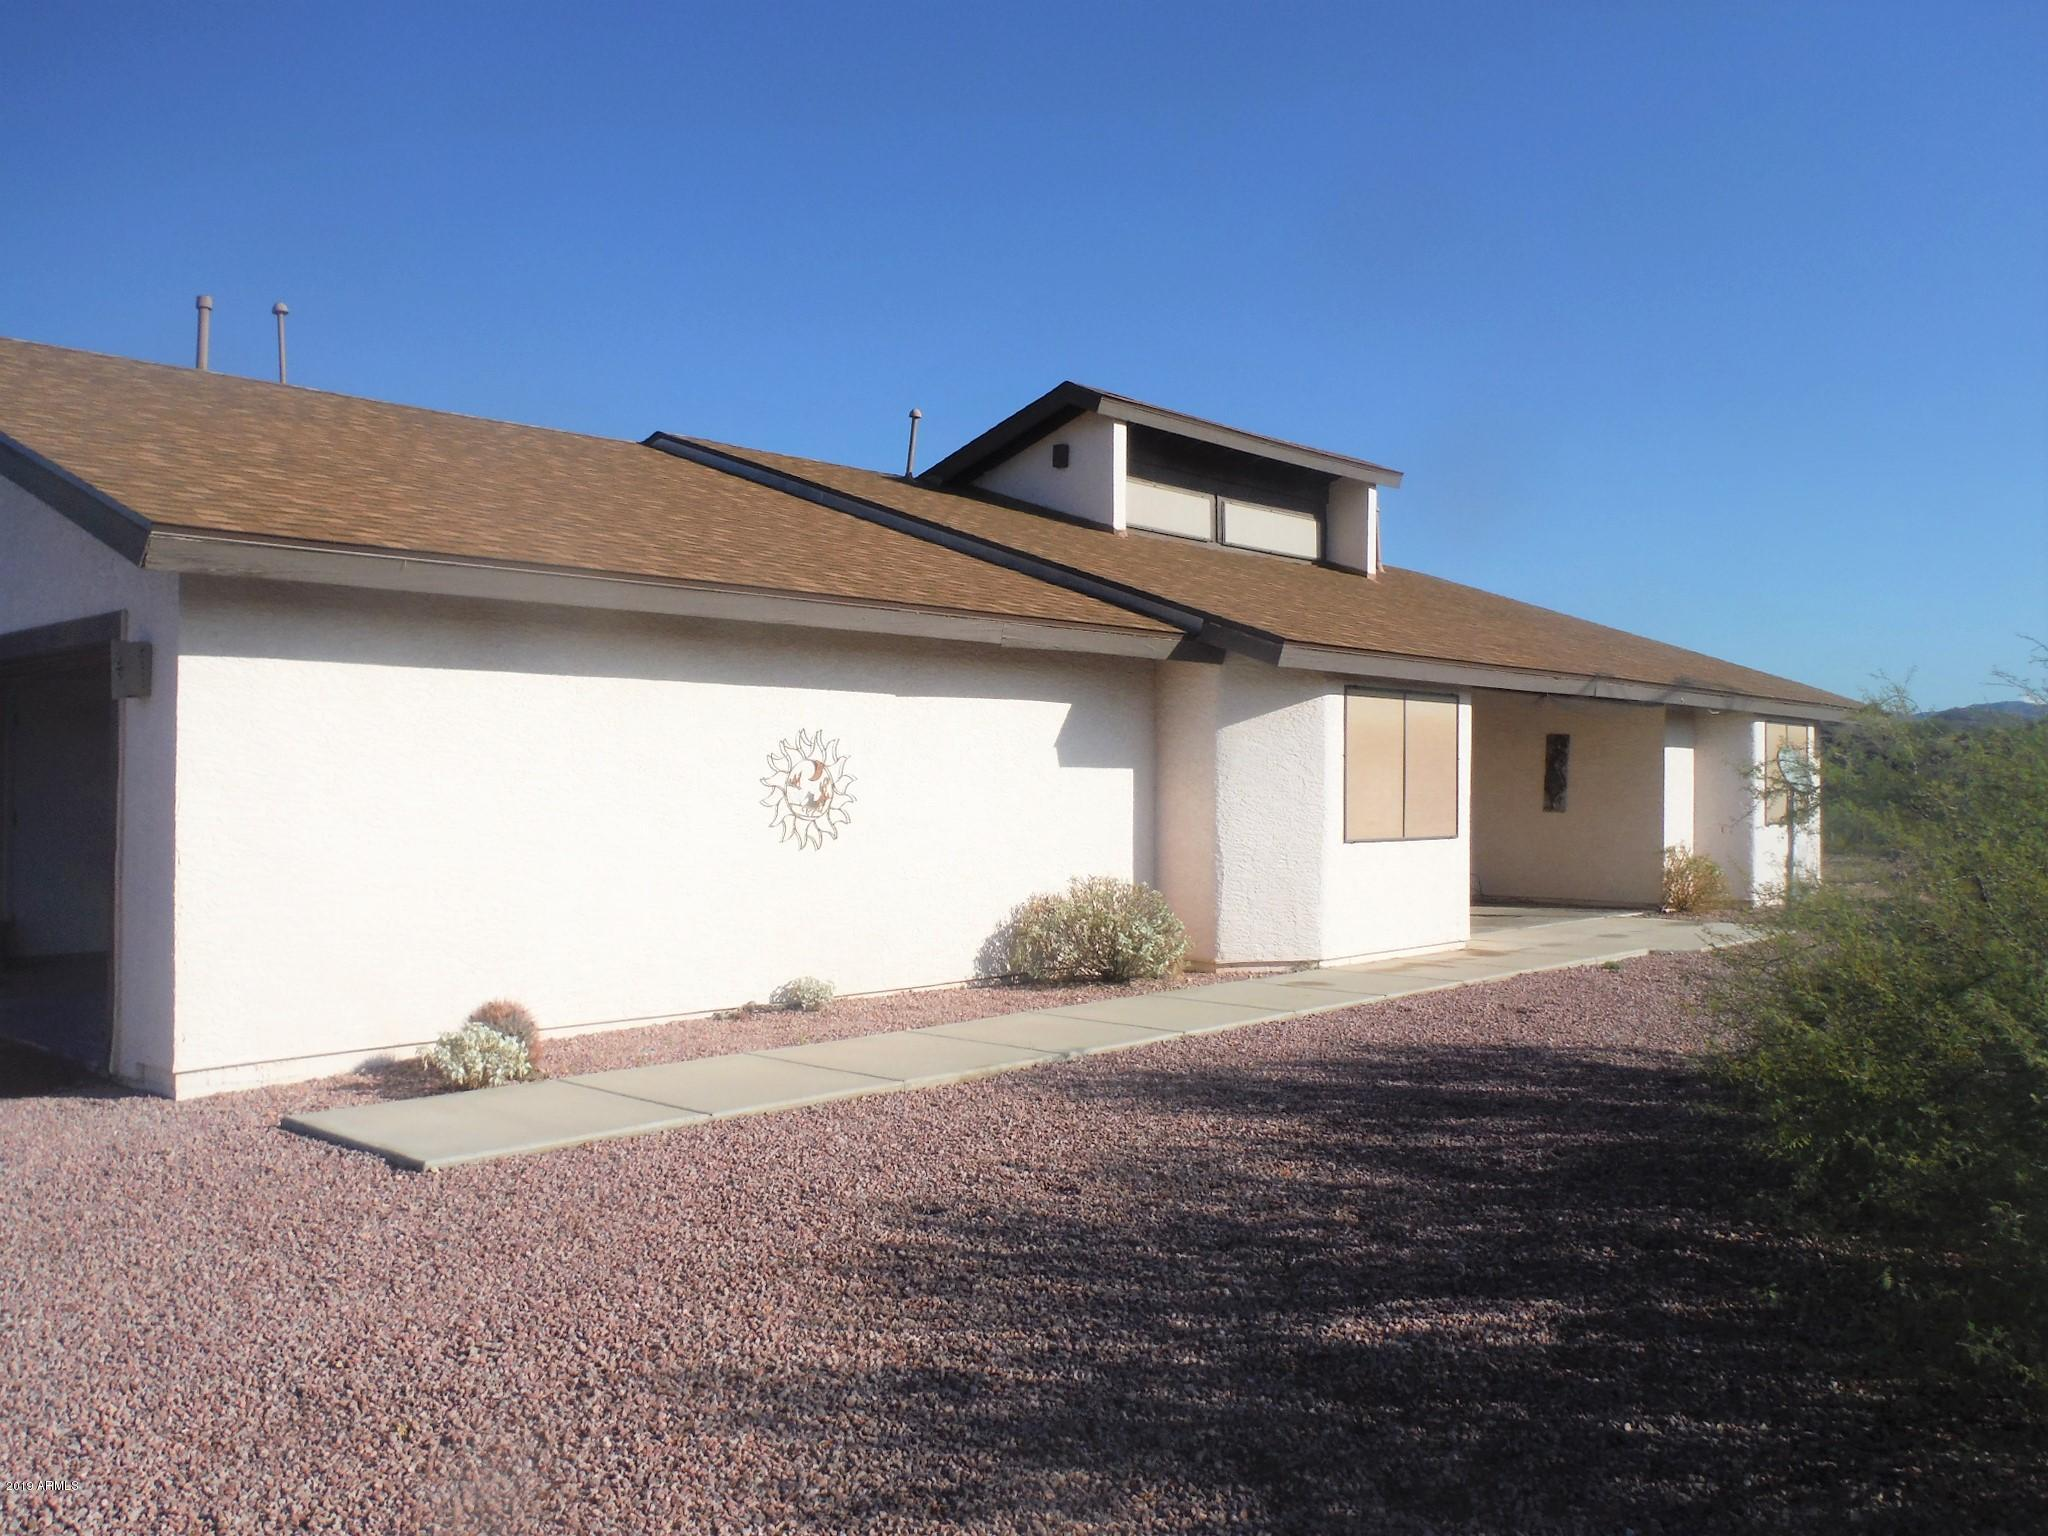 Photo of 49601 U.S. Hwy 60 89 --, Morristown, AZ 85342